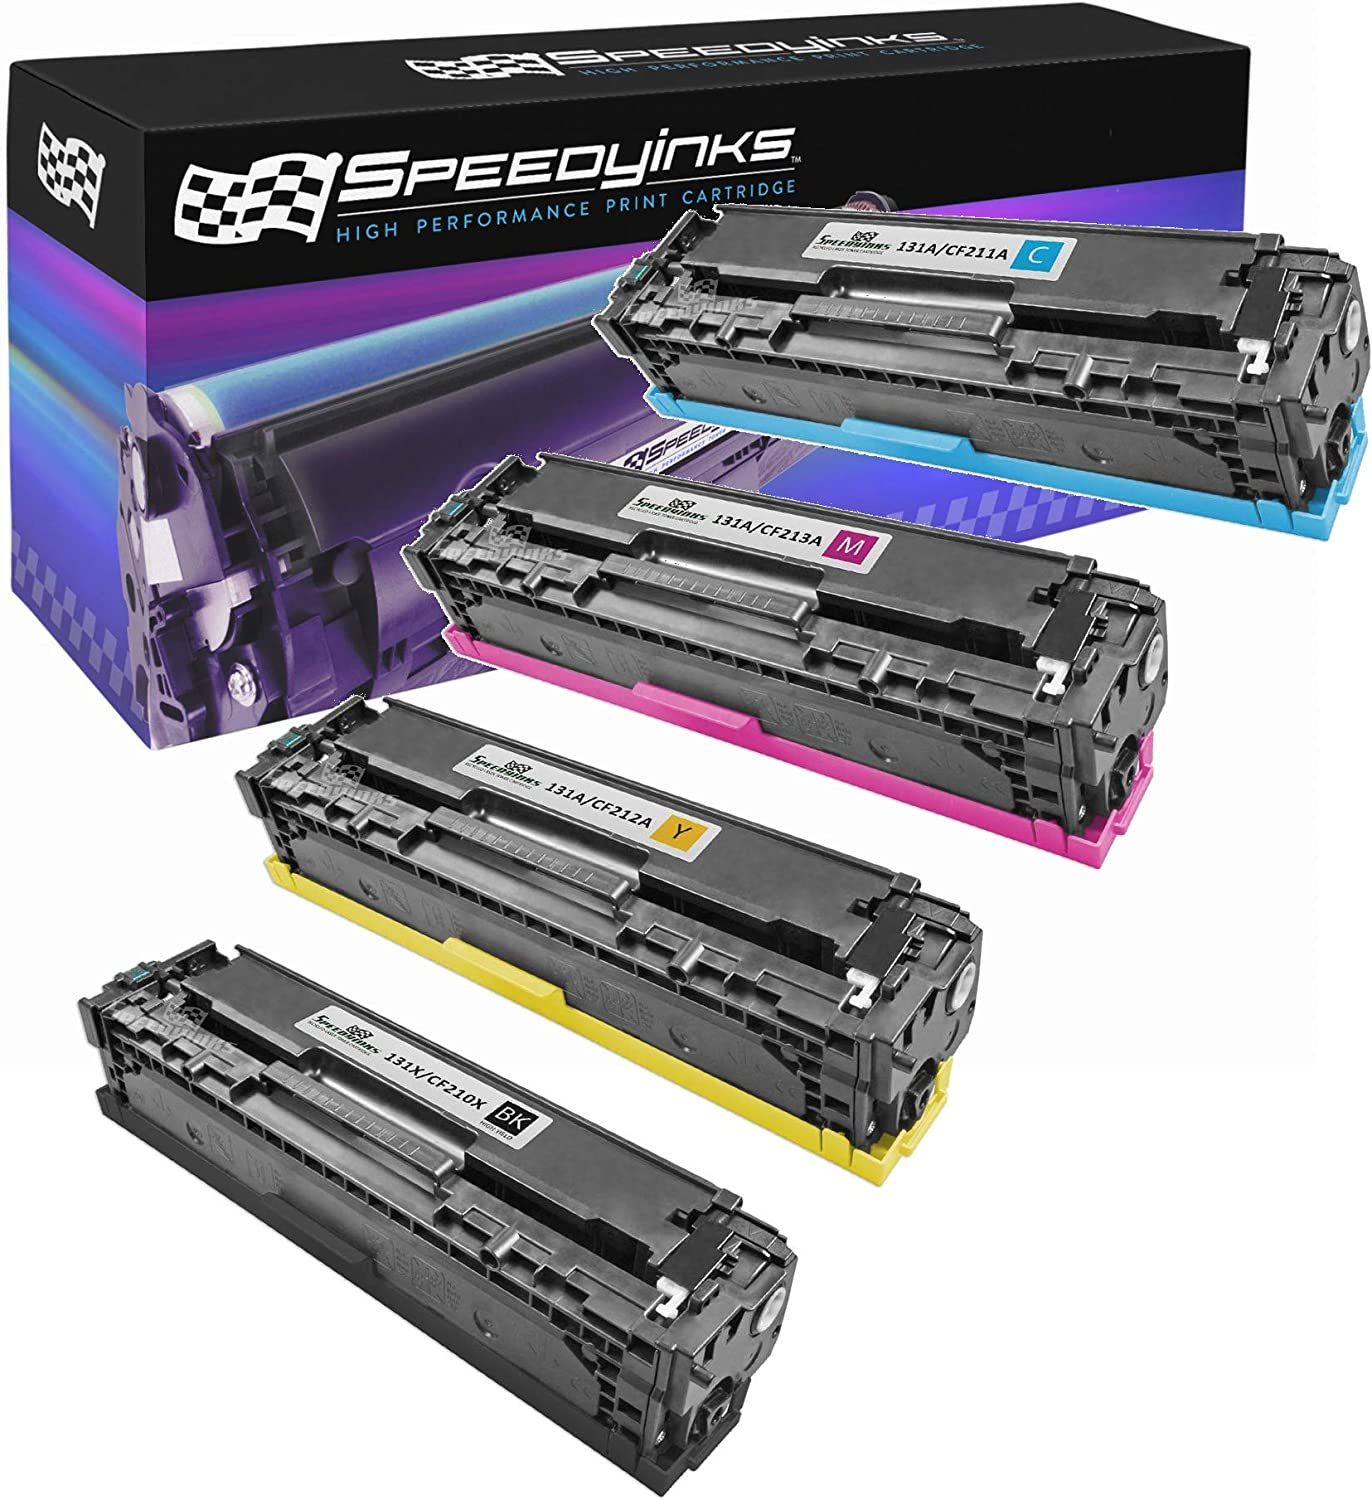 Speedy Inks Remanufactured Toner Cartridge Replacement for HP 131A (1 Black, 1 Cyan, 1 Magenta, 1 Yellow, 4-Pack)